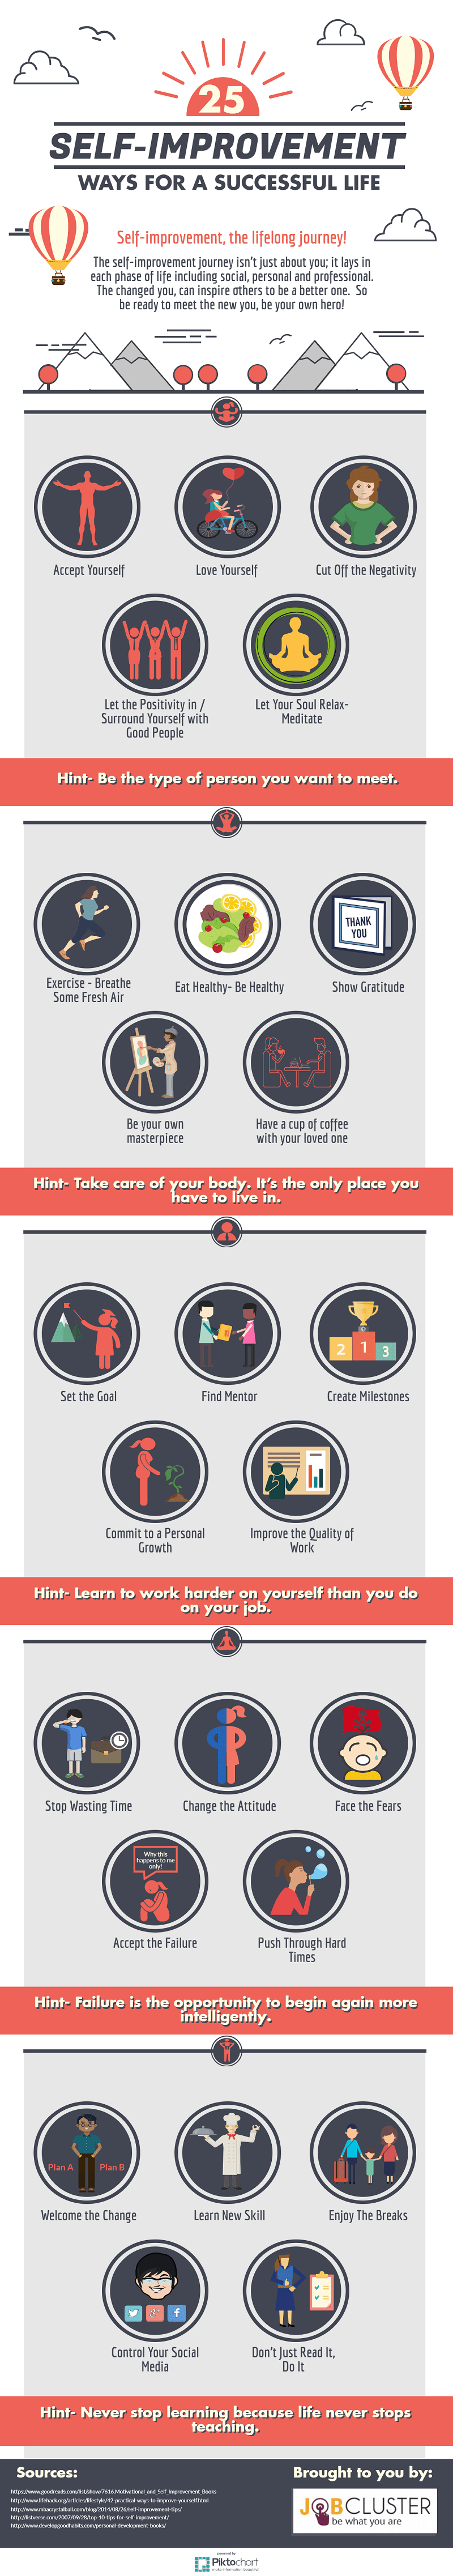 25 Self-Improvement Ways for a Successful Life